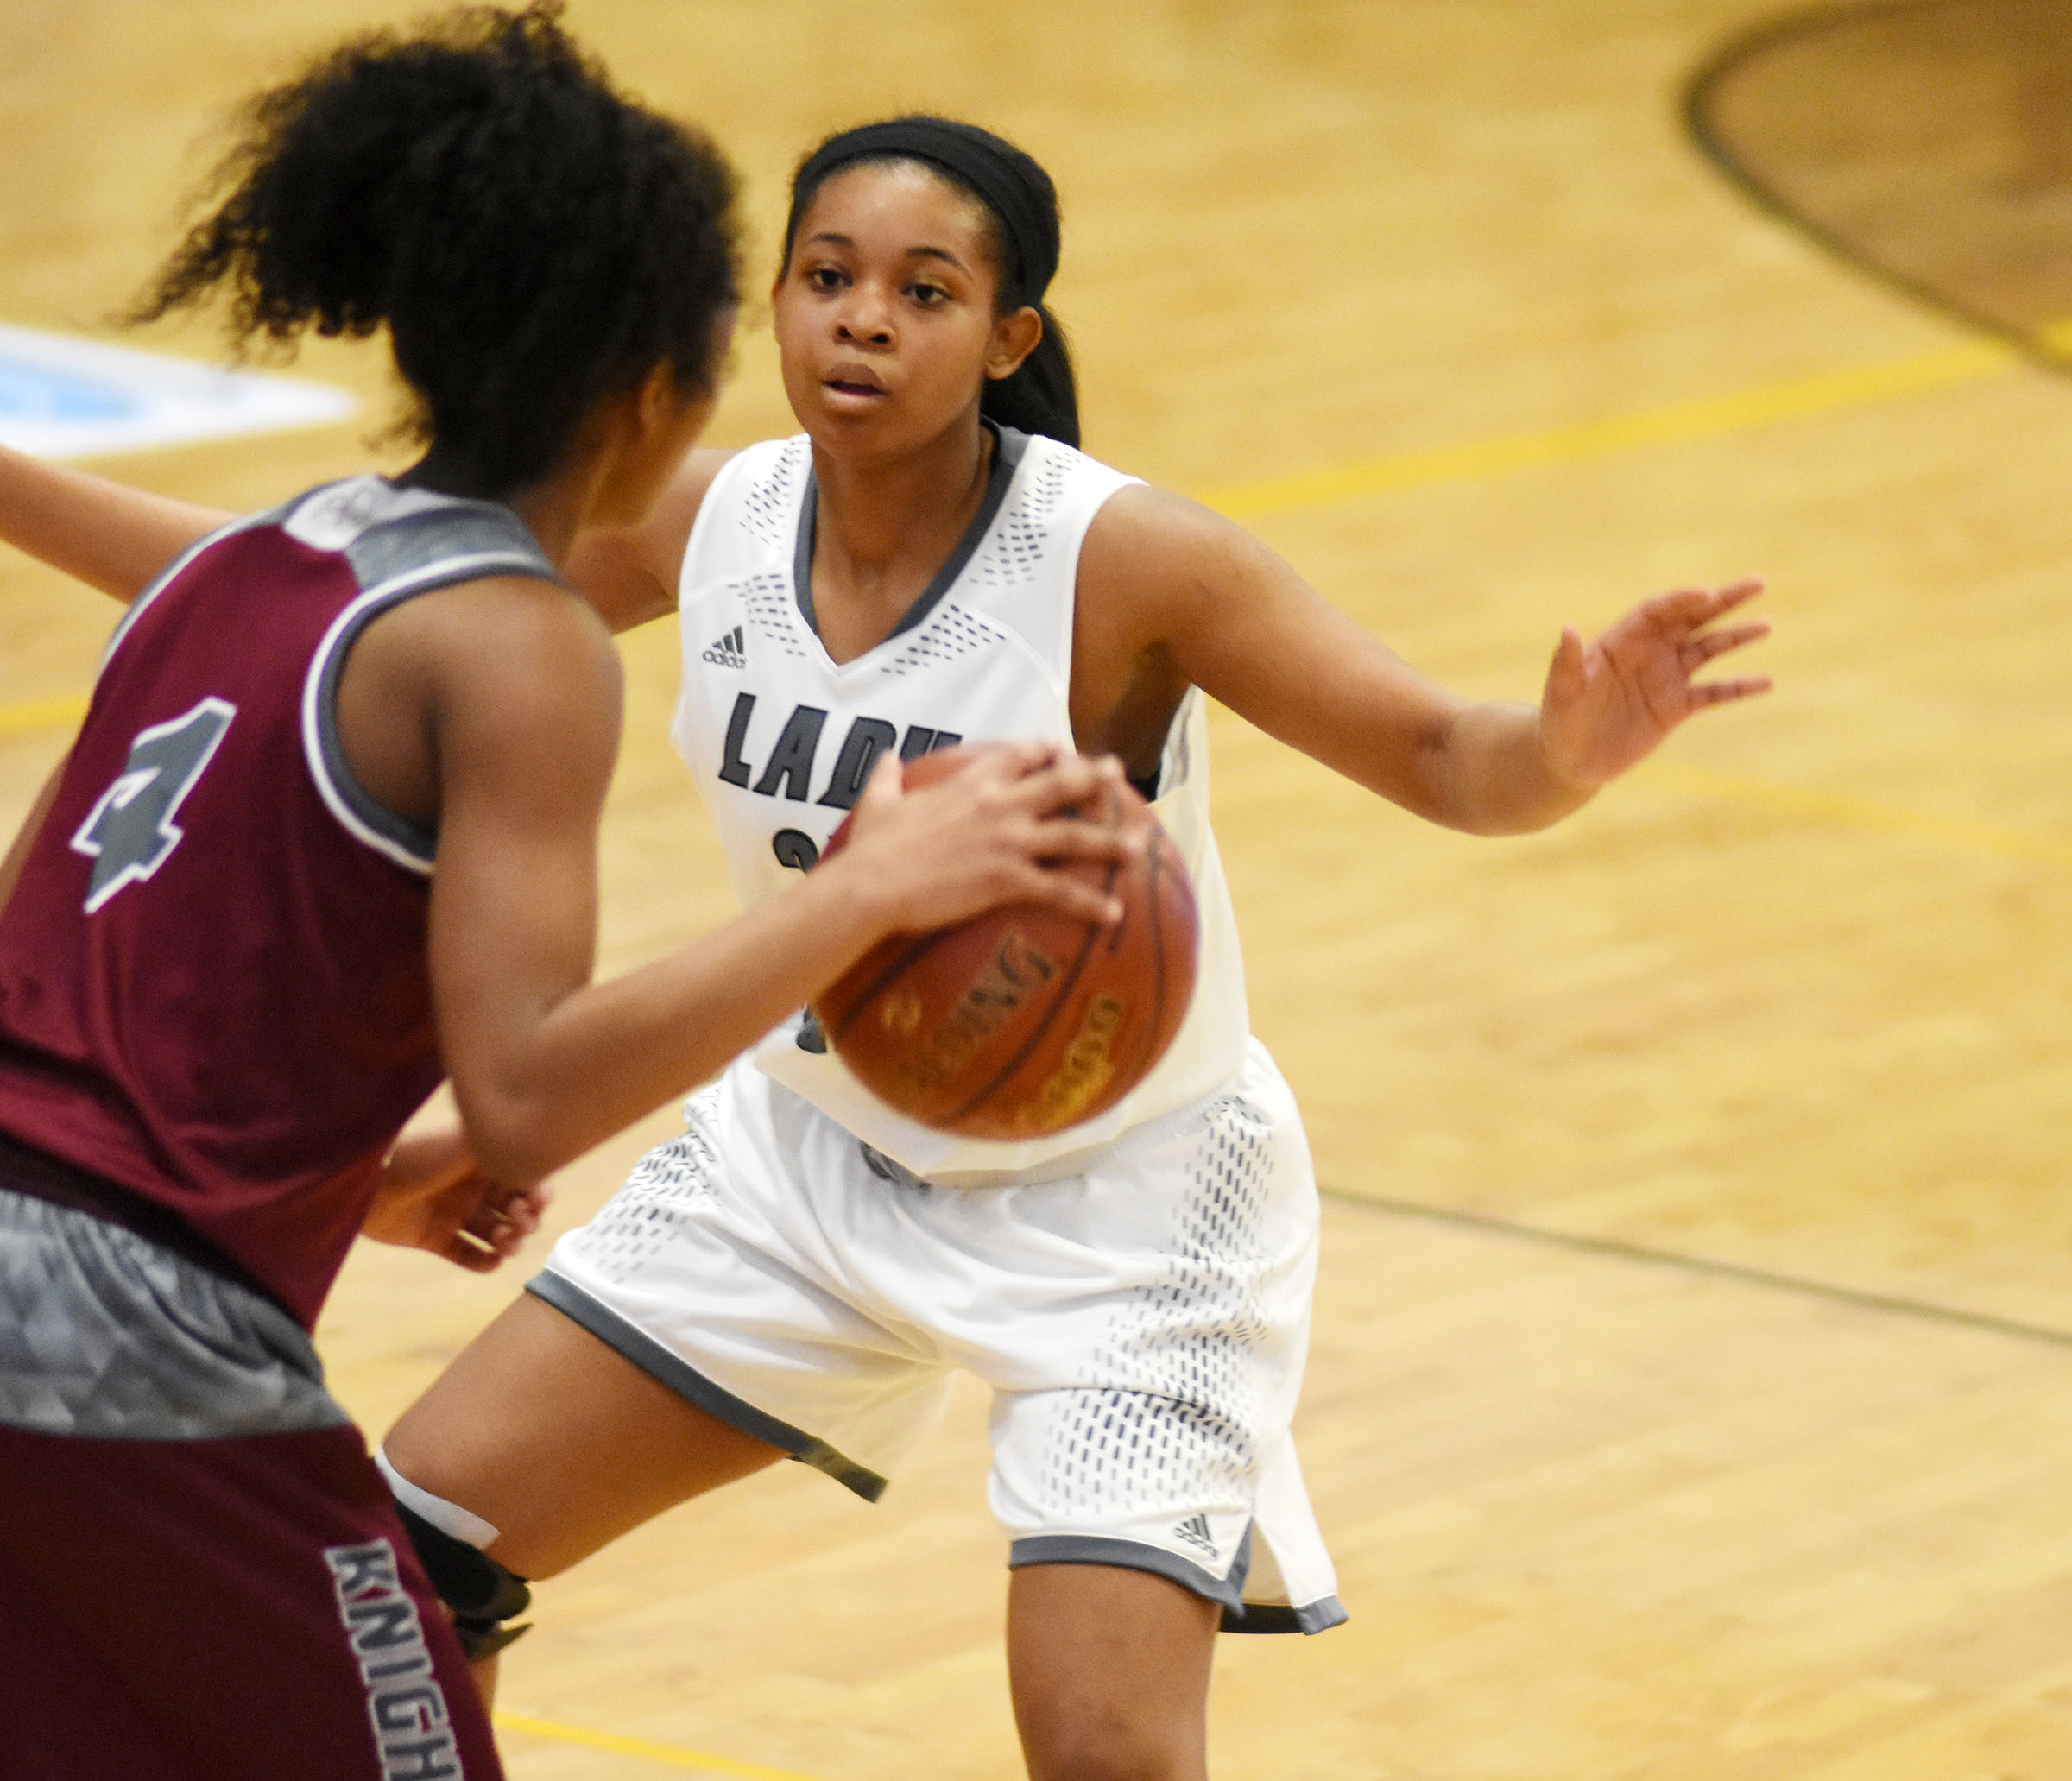 CHS senior Vonnea Smith plays defense.